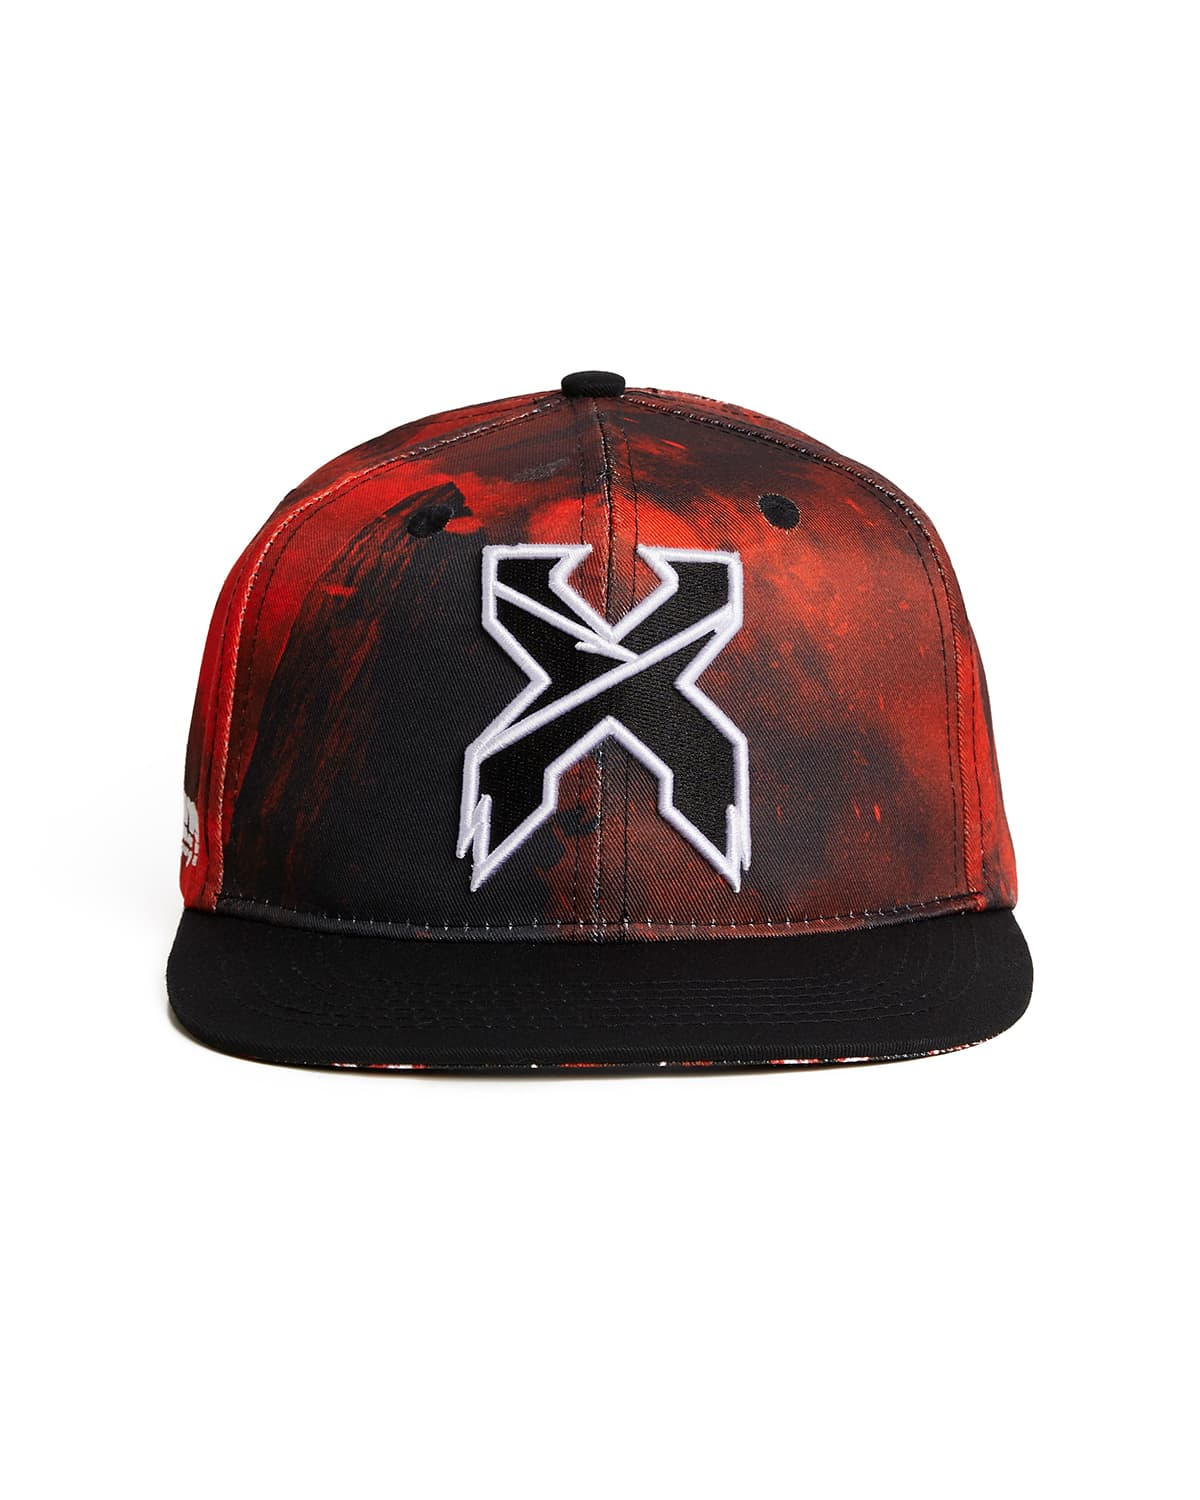 'Apex' Snapback - Black/Red